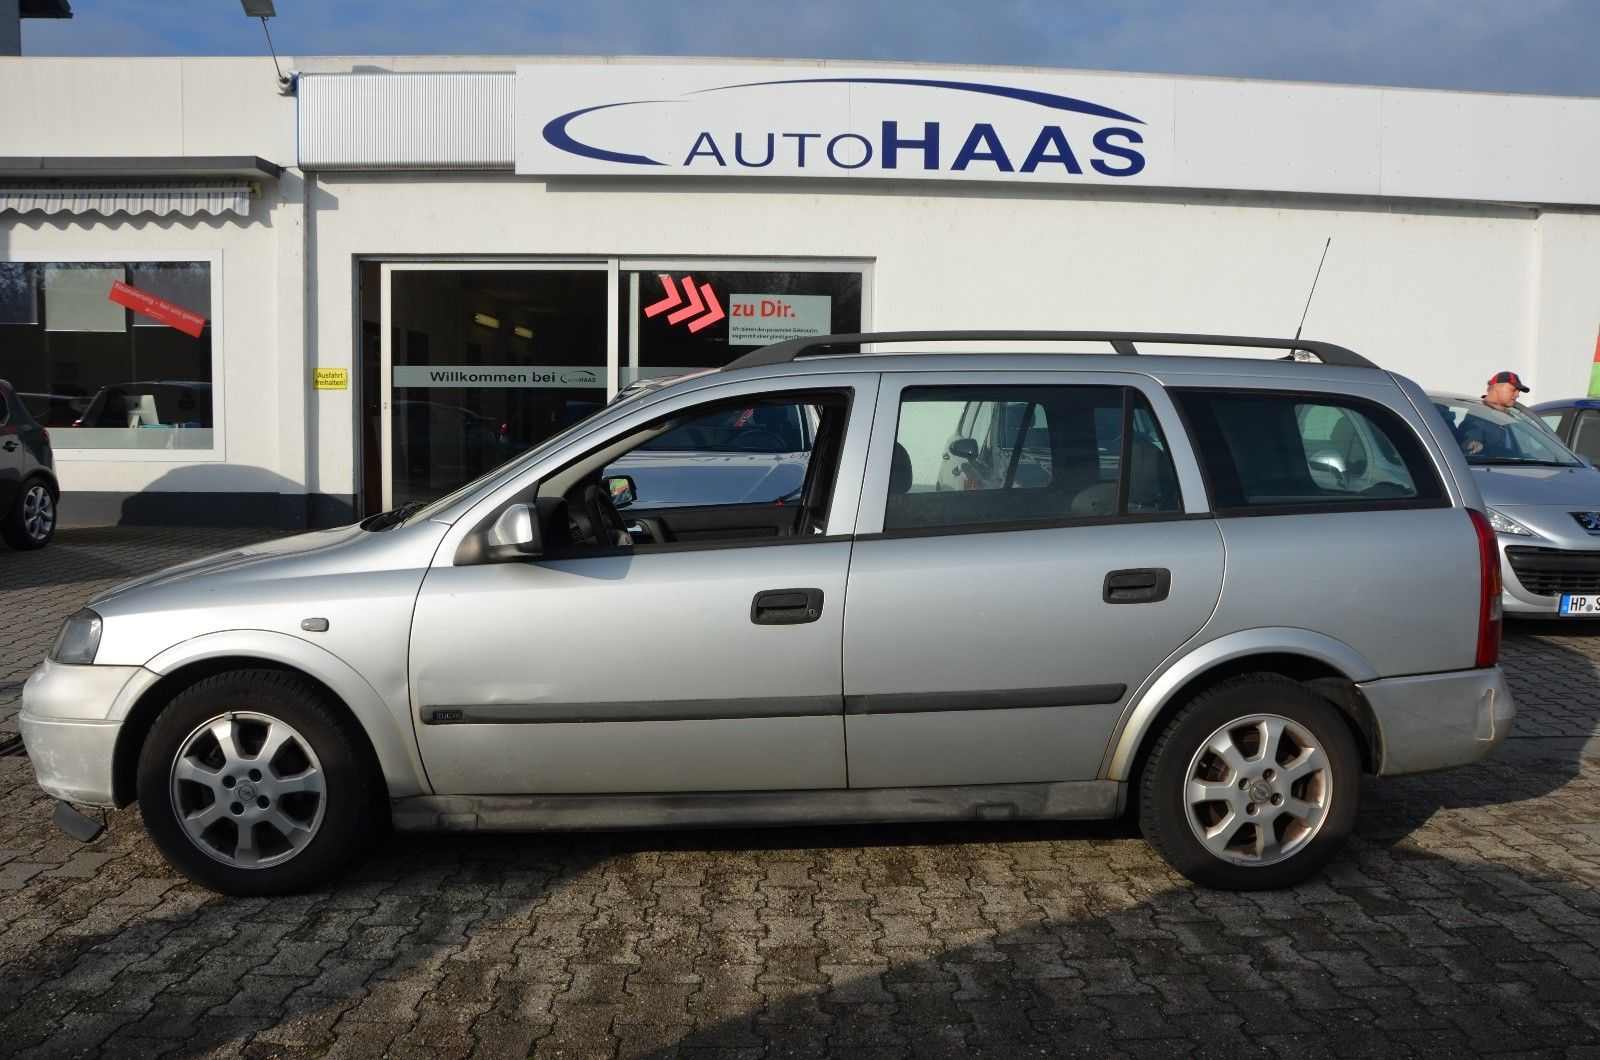 OPEL Astra G Car Selection